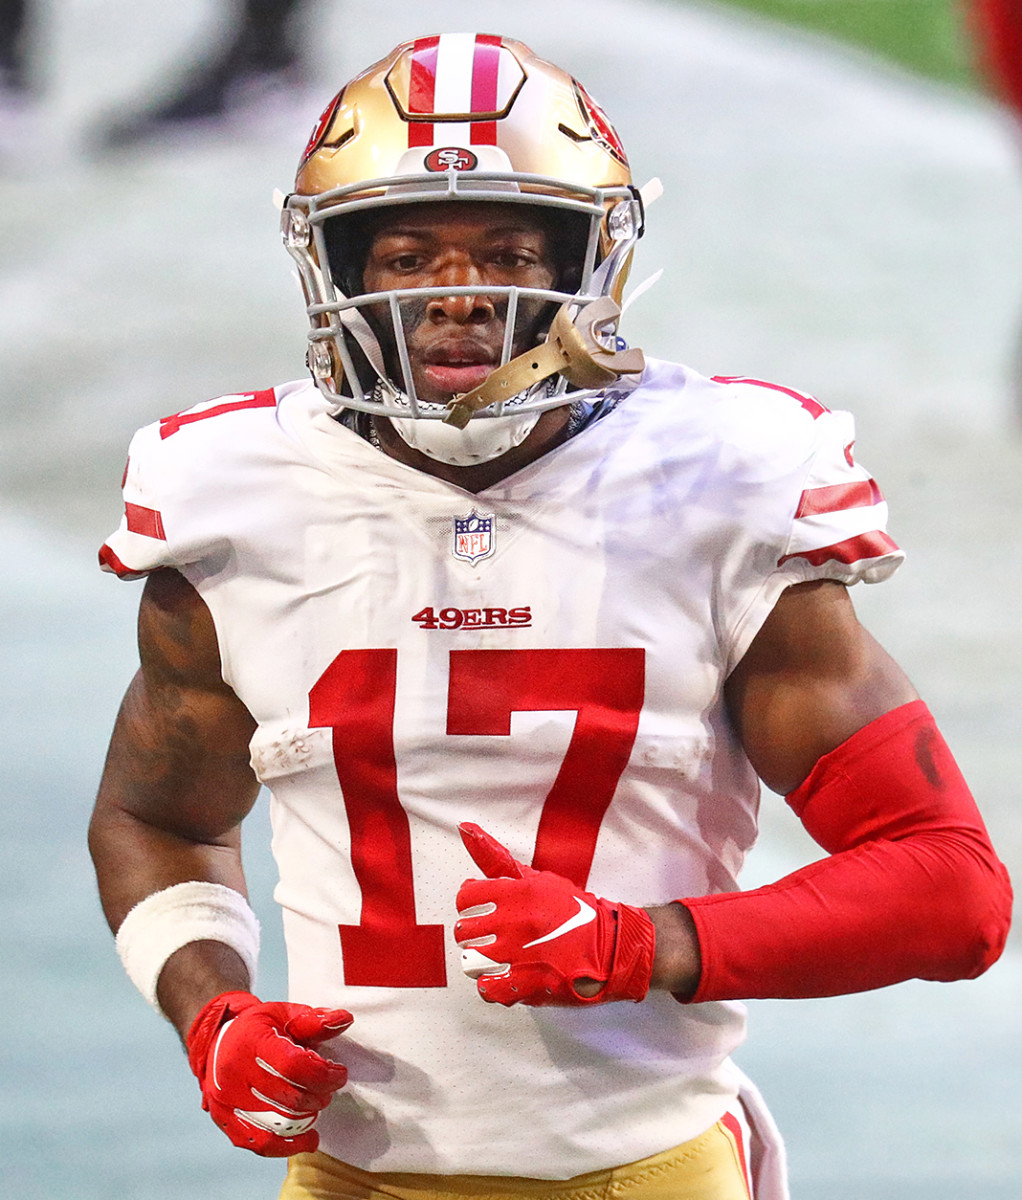 49ers receiver Matt Cole warms up on the sideline during a 2020 game